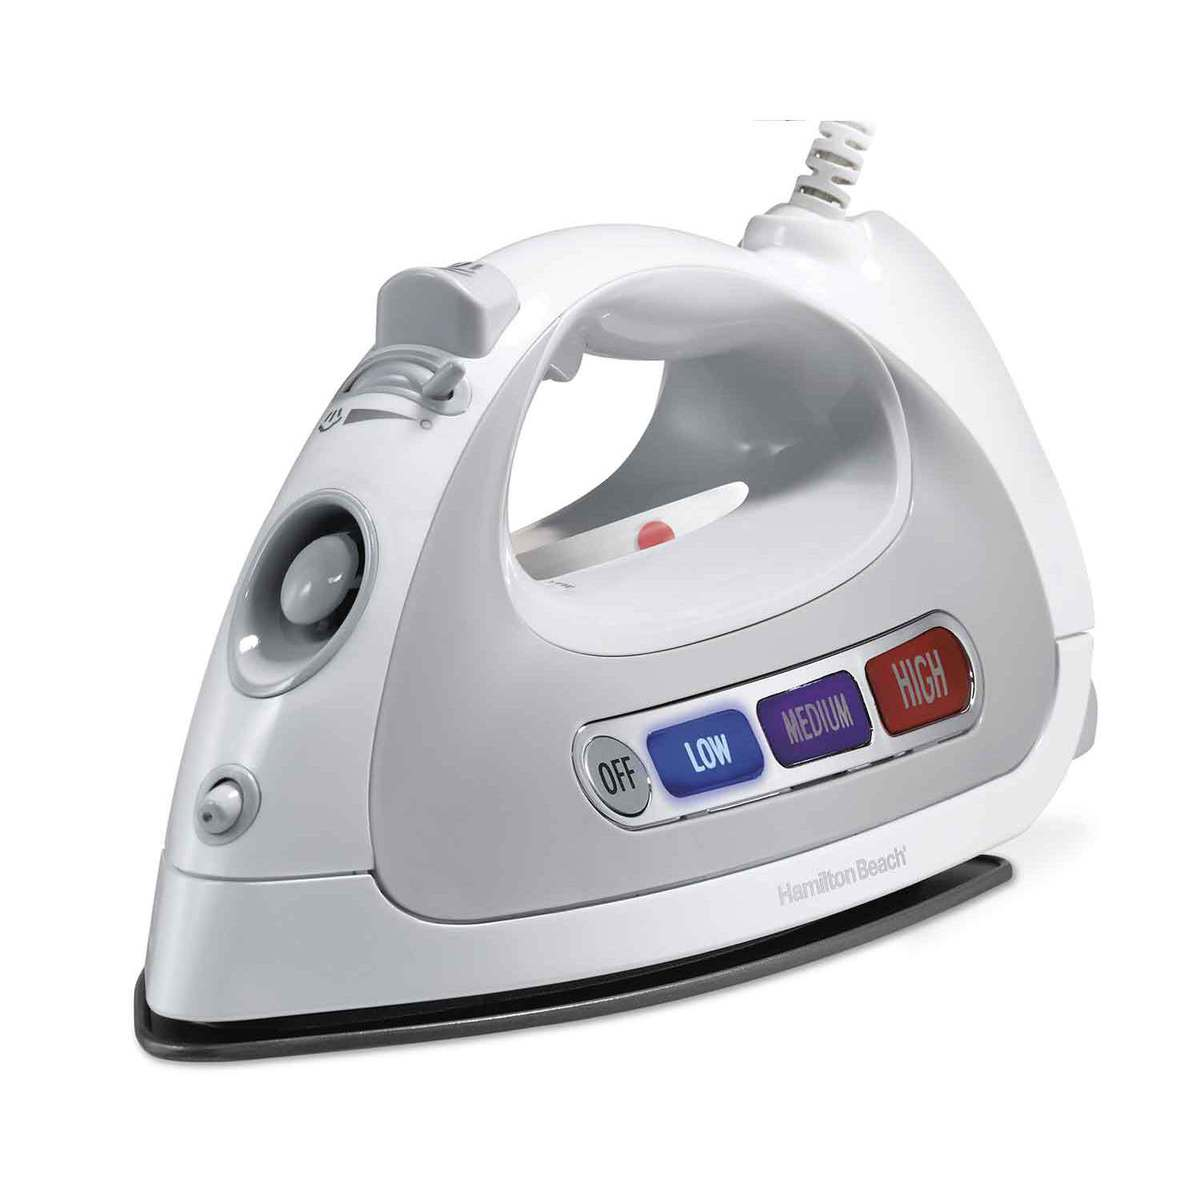 Easy Touch™ Iron (14413)